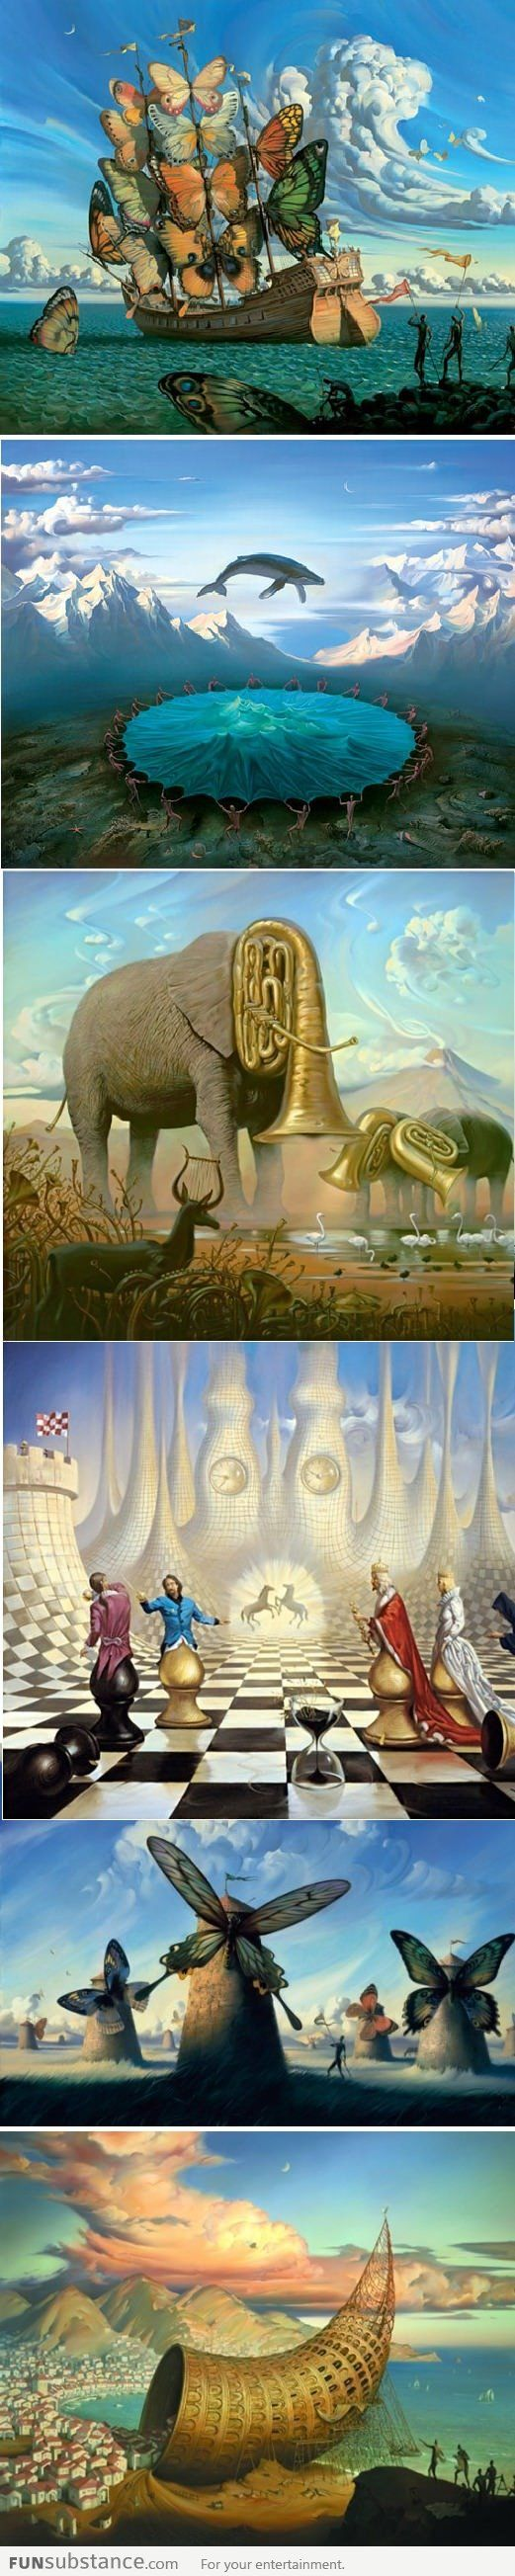 Surrealistic painter: Vladimir Kush - FunSubstance.com                                                                                                                                                                                 More